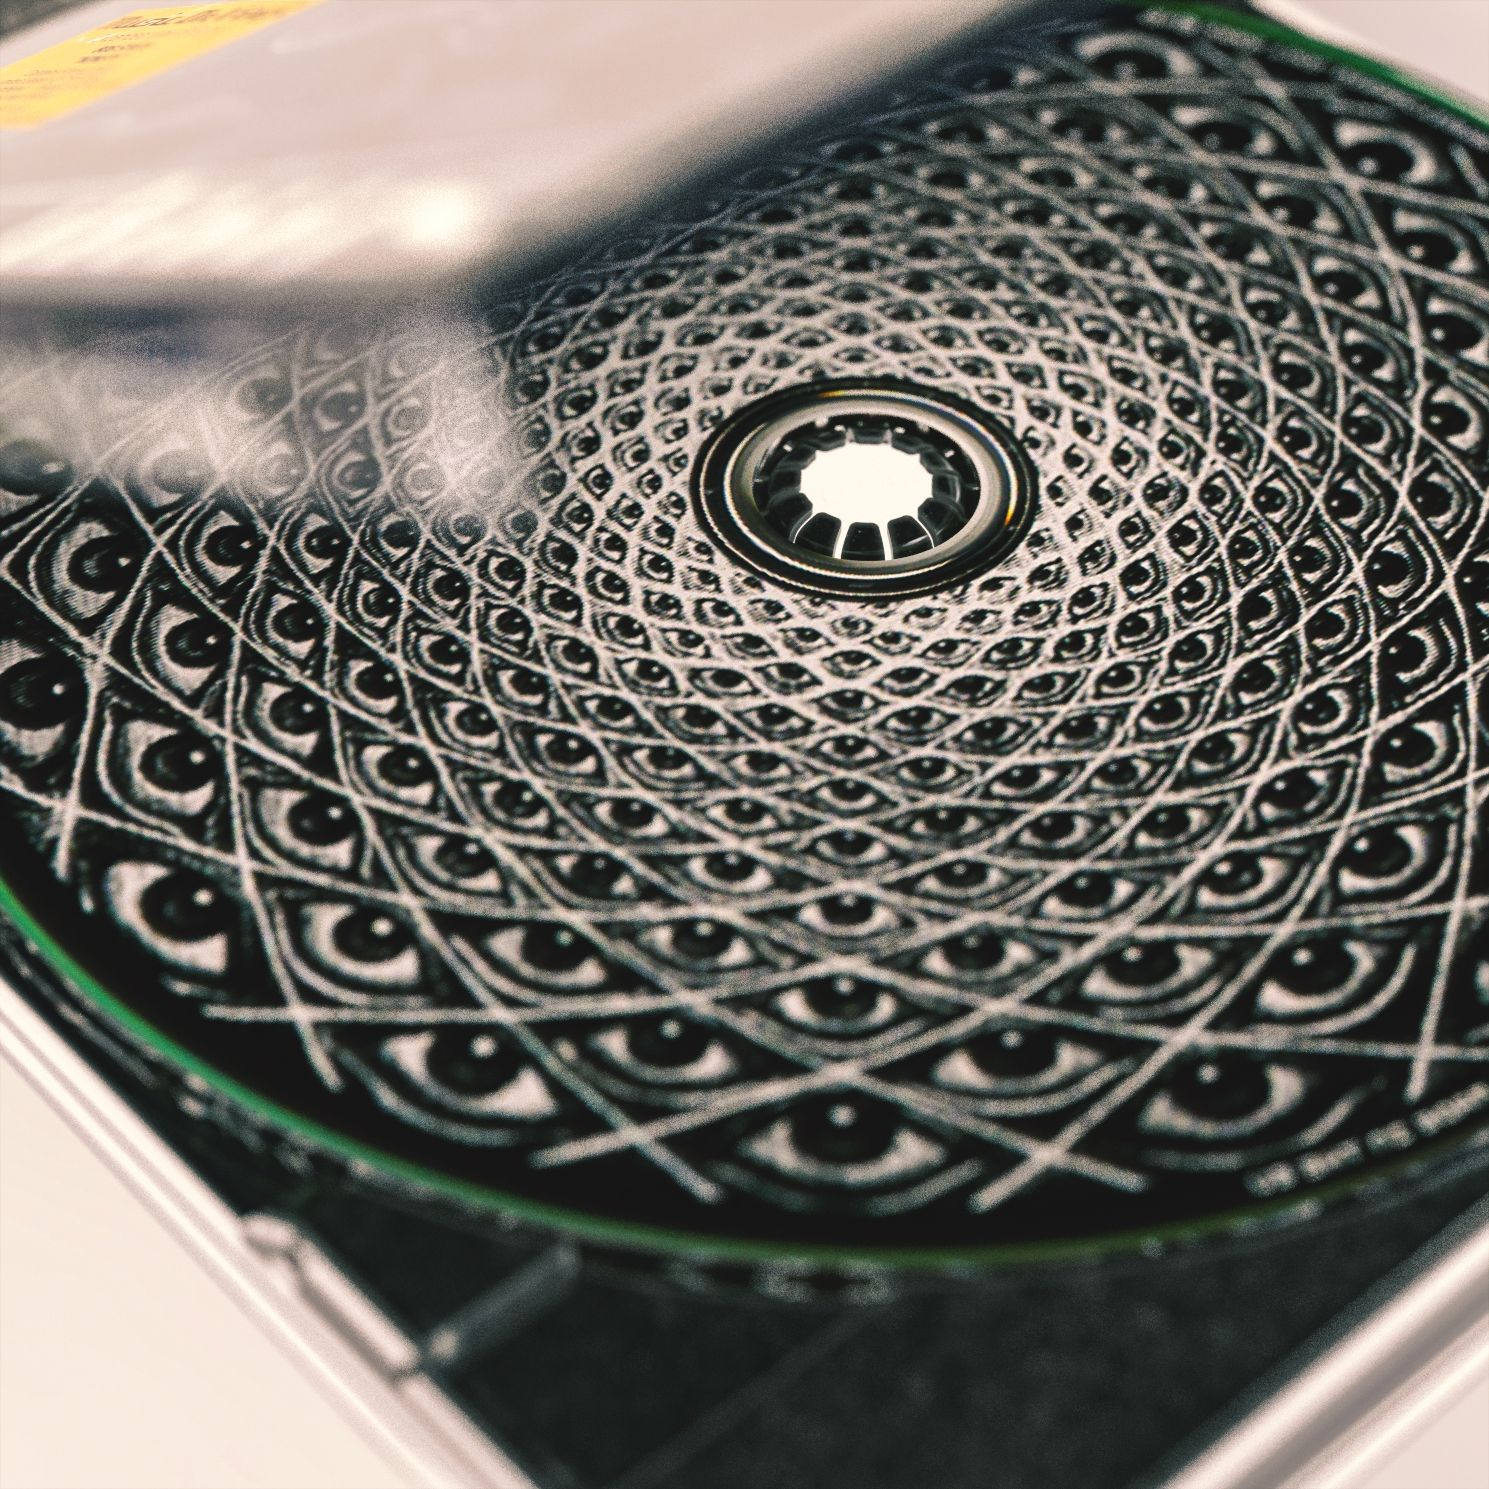 TOOL 10000 days CD case close ups, rendered in KeyShot by Hossein